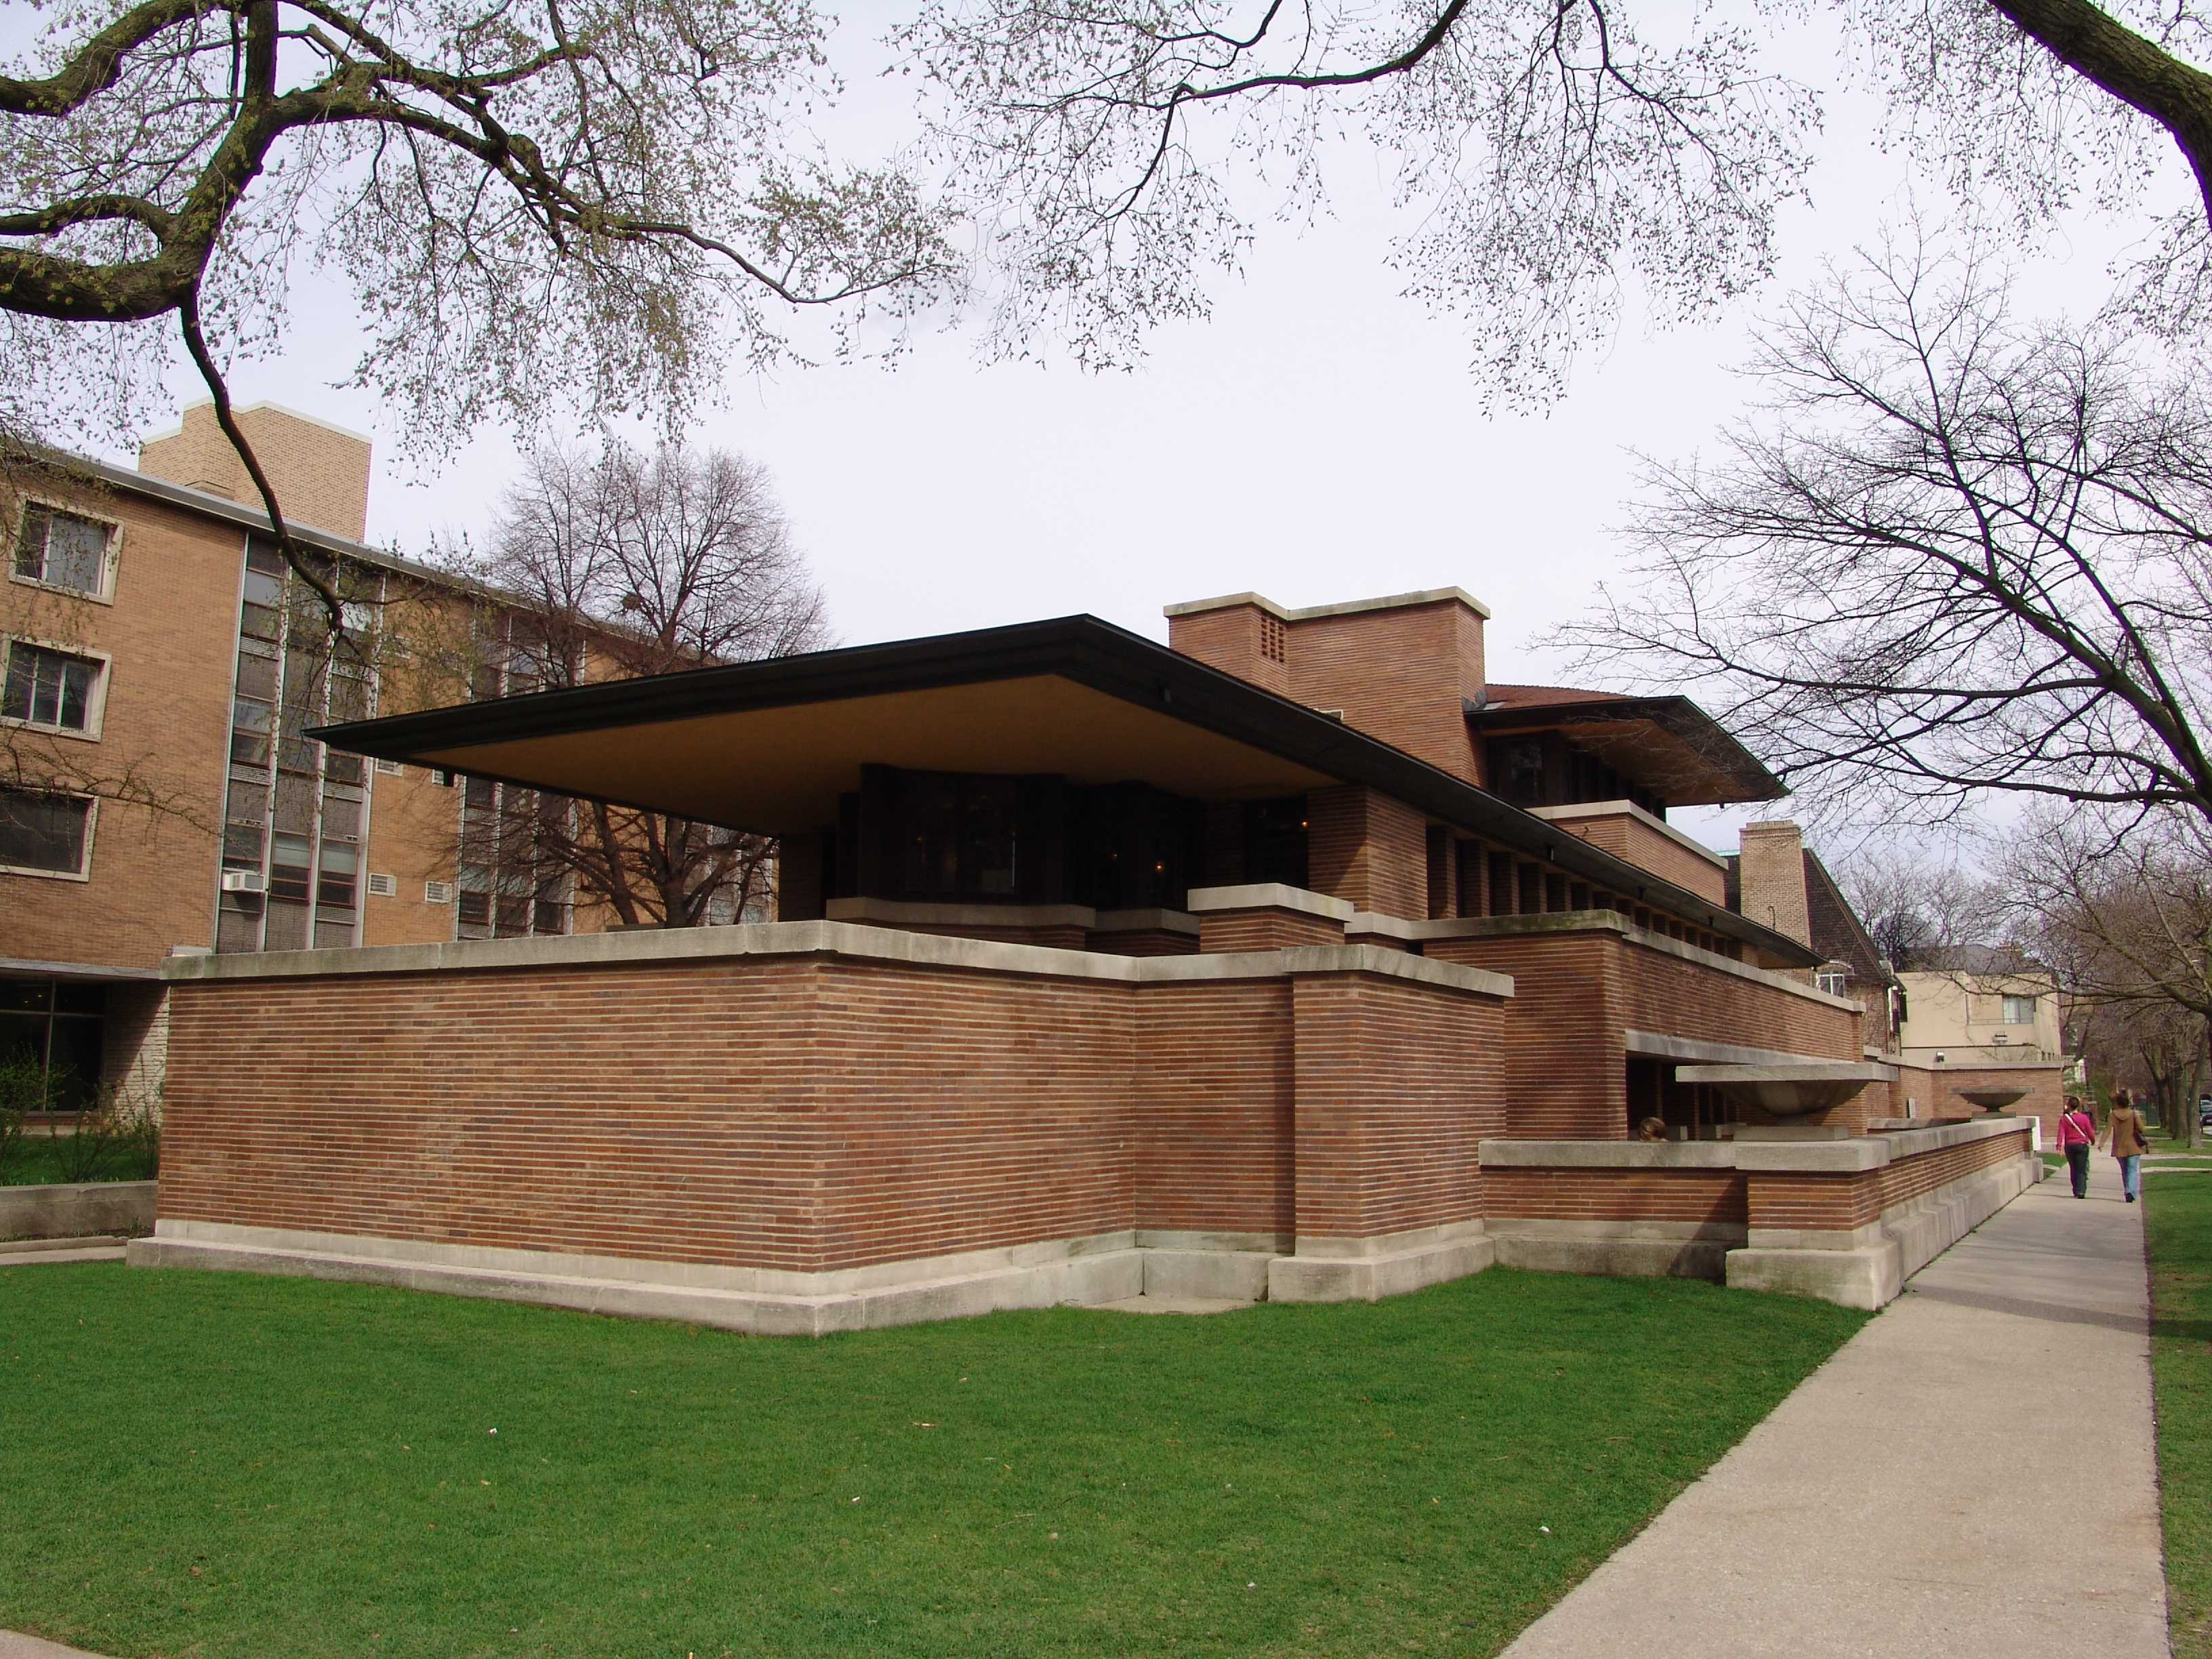 file frank lloyd wright robie house 2 jpg wikipedia. Black Bedroom Furniture Sets. Home Design Ideas